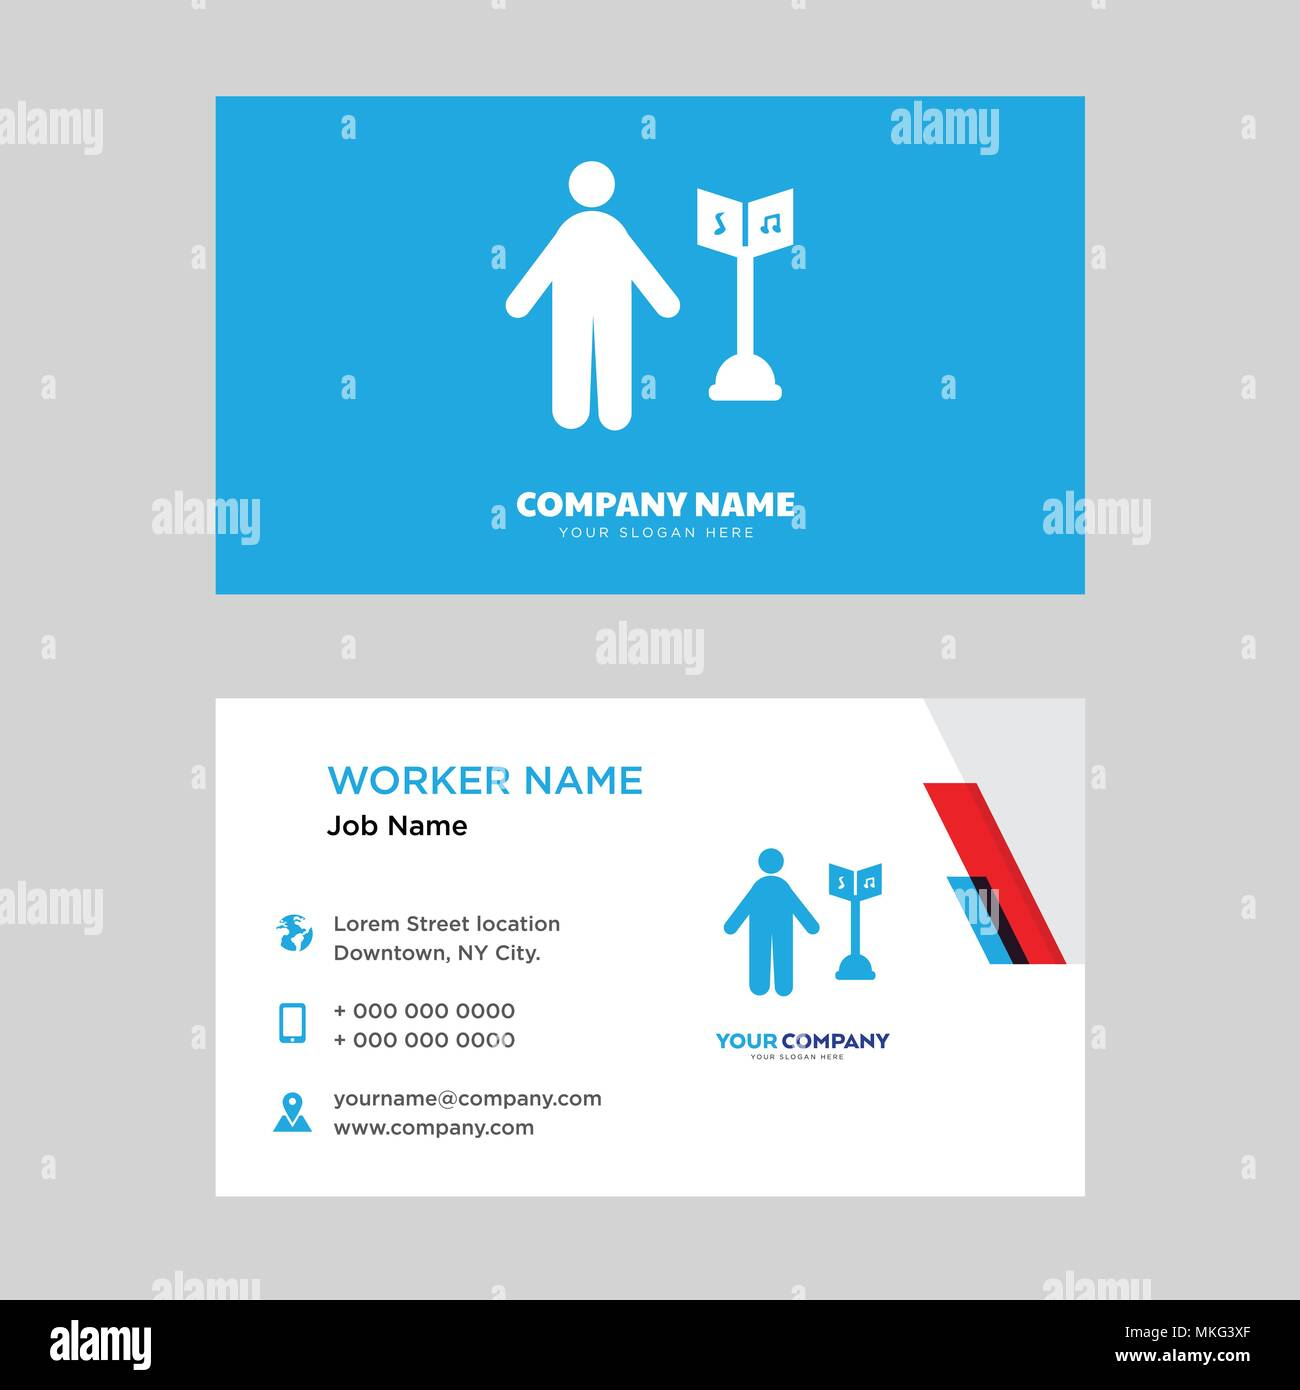 Musician business card design template visiting for your company musician business card design template visiting for your company modern horizontal identity card vector colourmoves